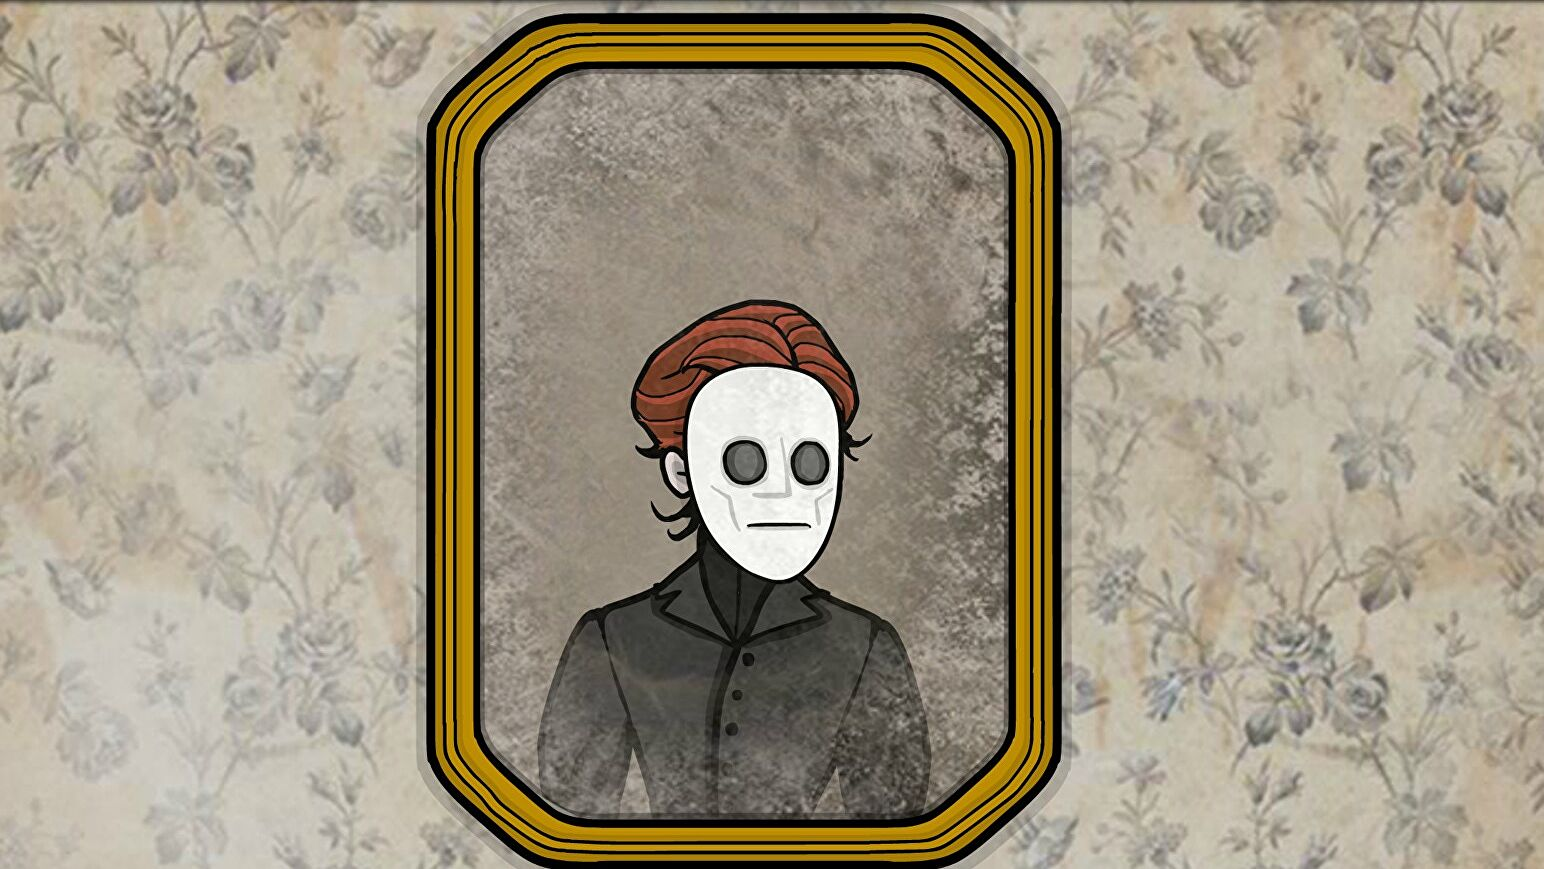 Rusty Lake returns with an ambitious co-op puzzle game The Past Within